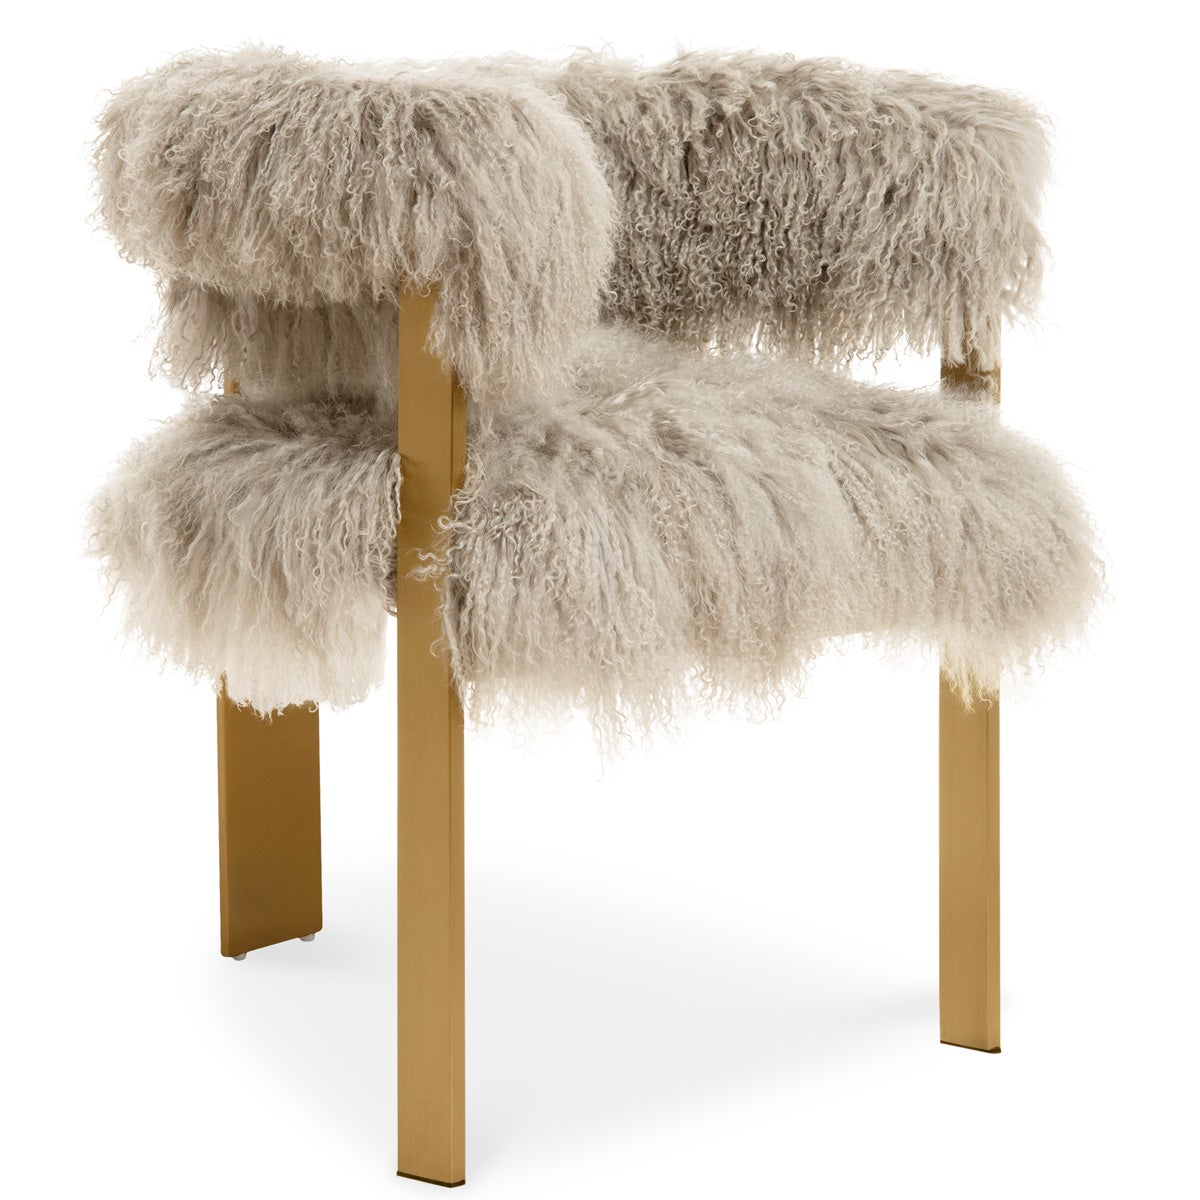 Marseille Dining Chair in Mongolian Fur - ModShop1.com